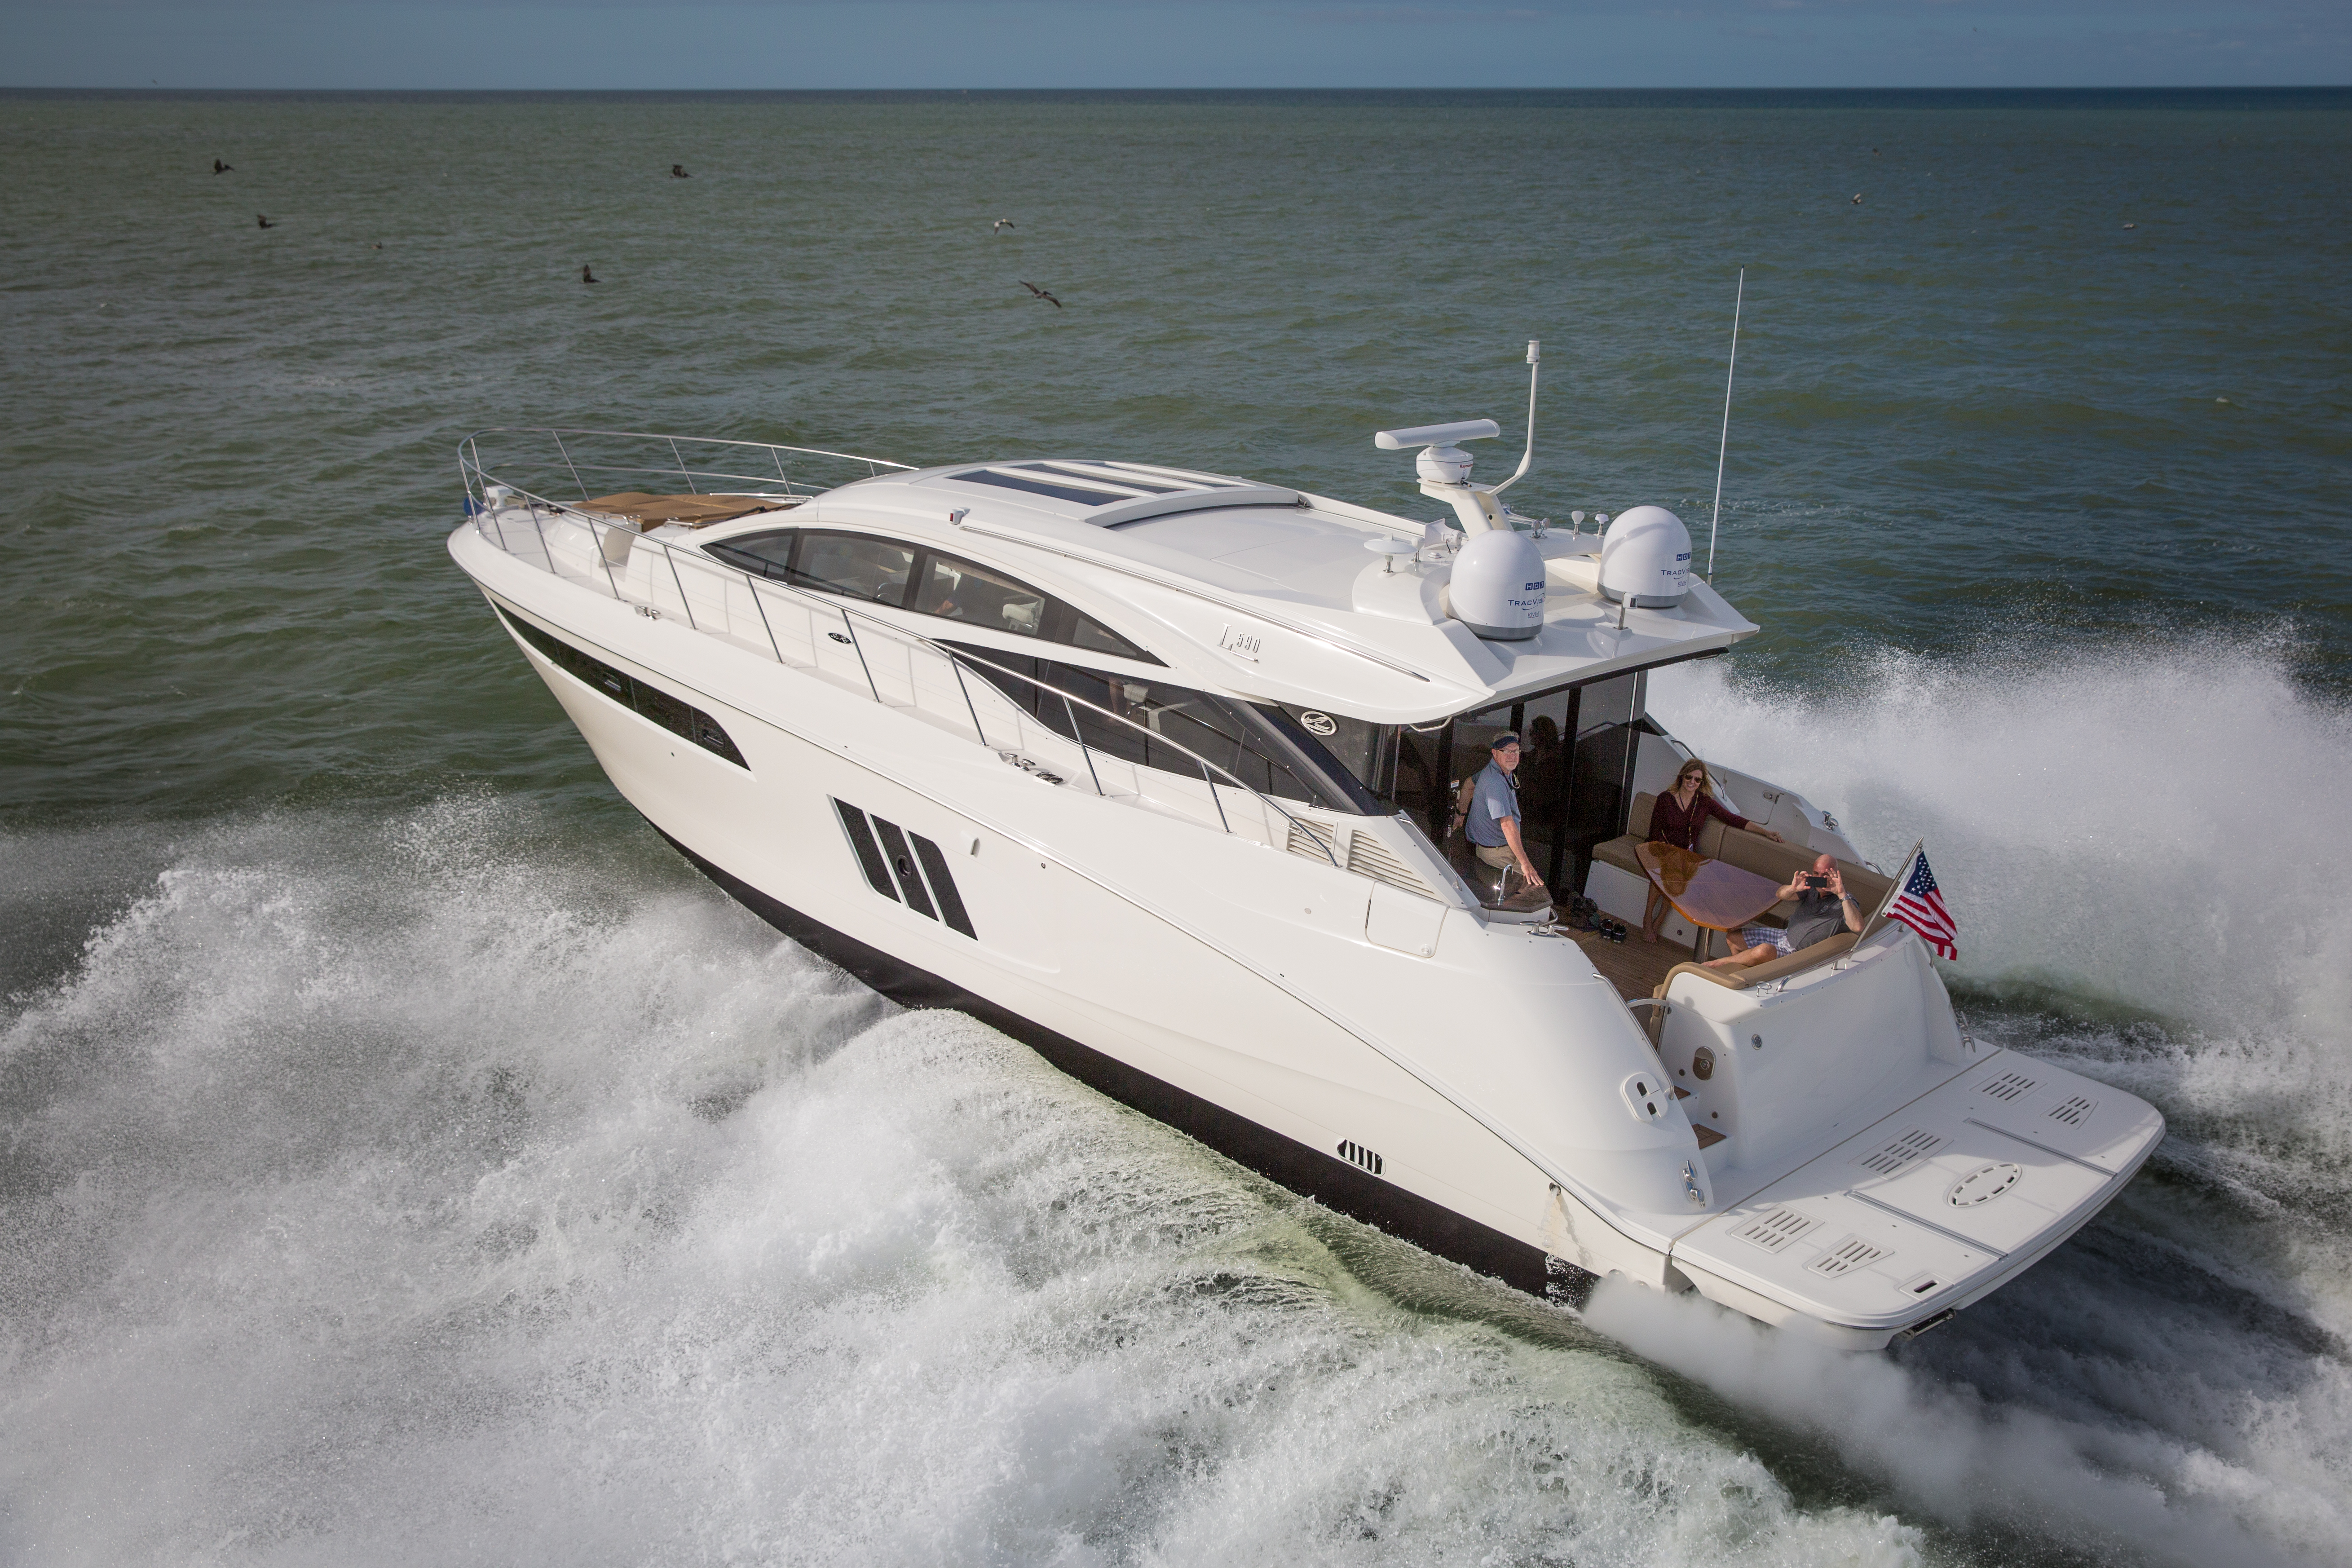 A cruising motor yacht out on the water traveling to the destination